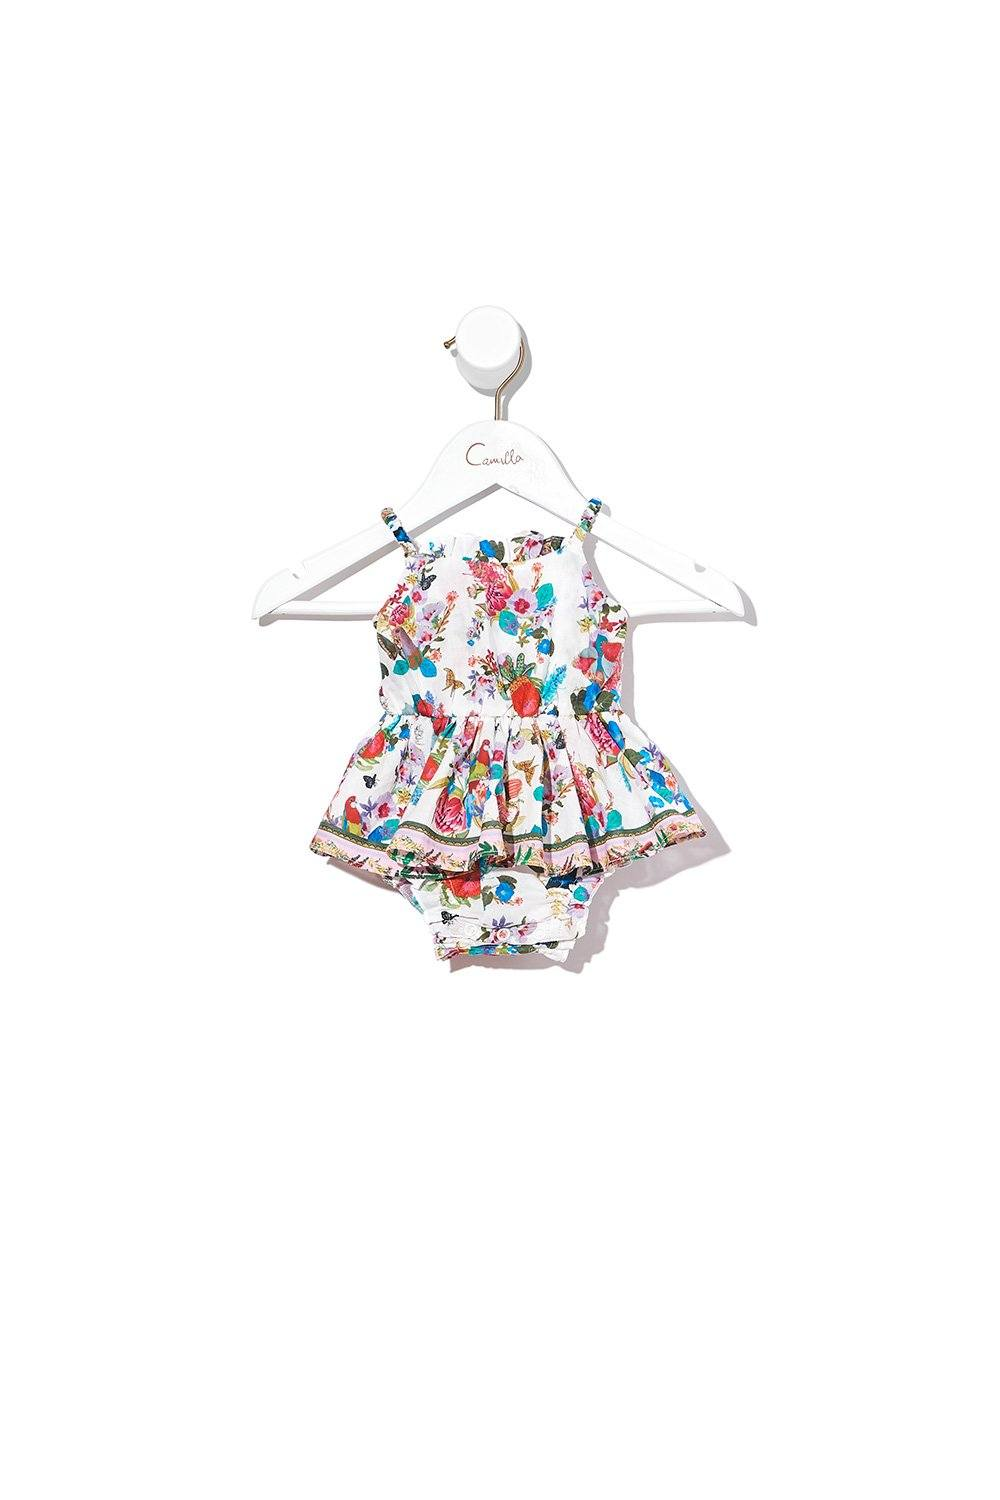 Homeward Found Babies Jumpdress BABY CLOTHING CAMILLA